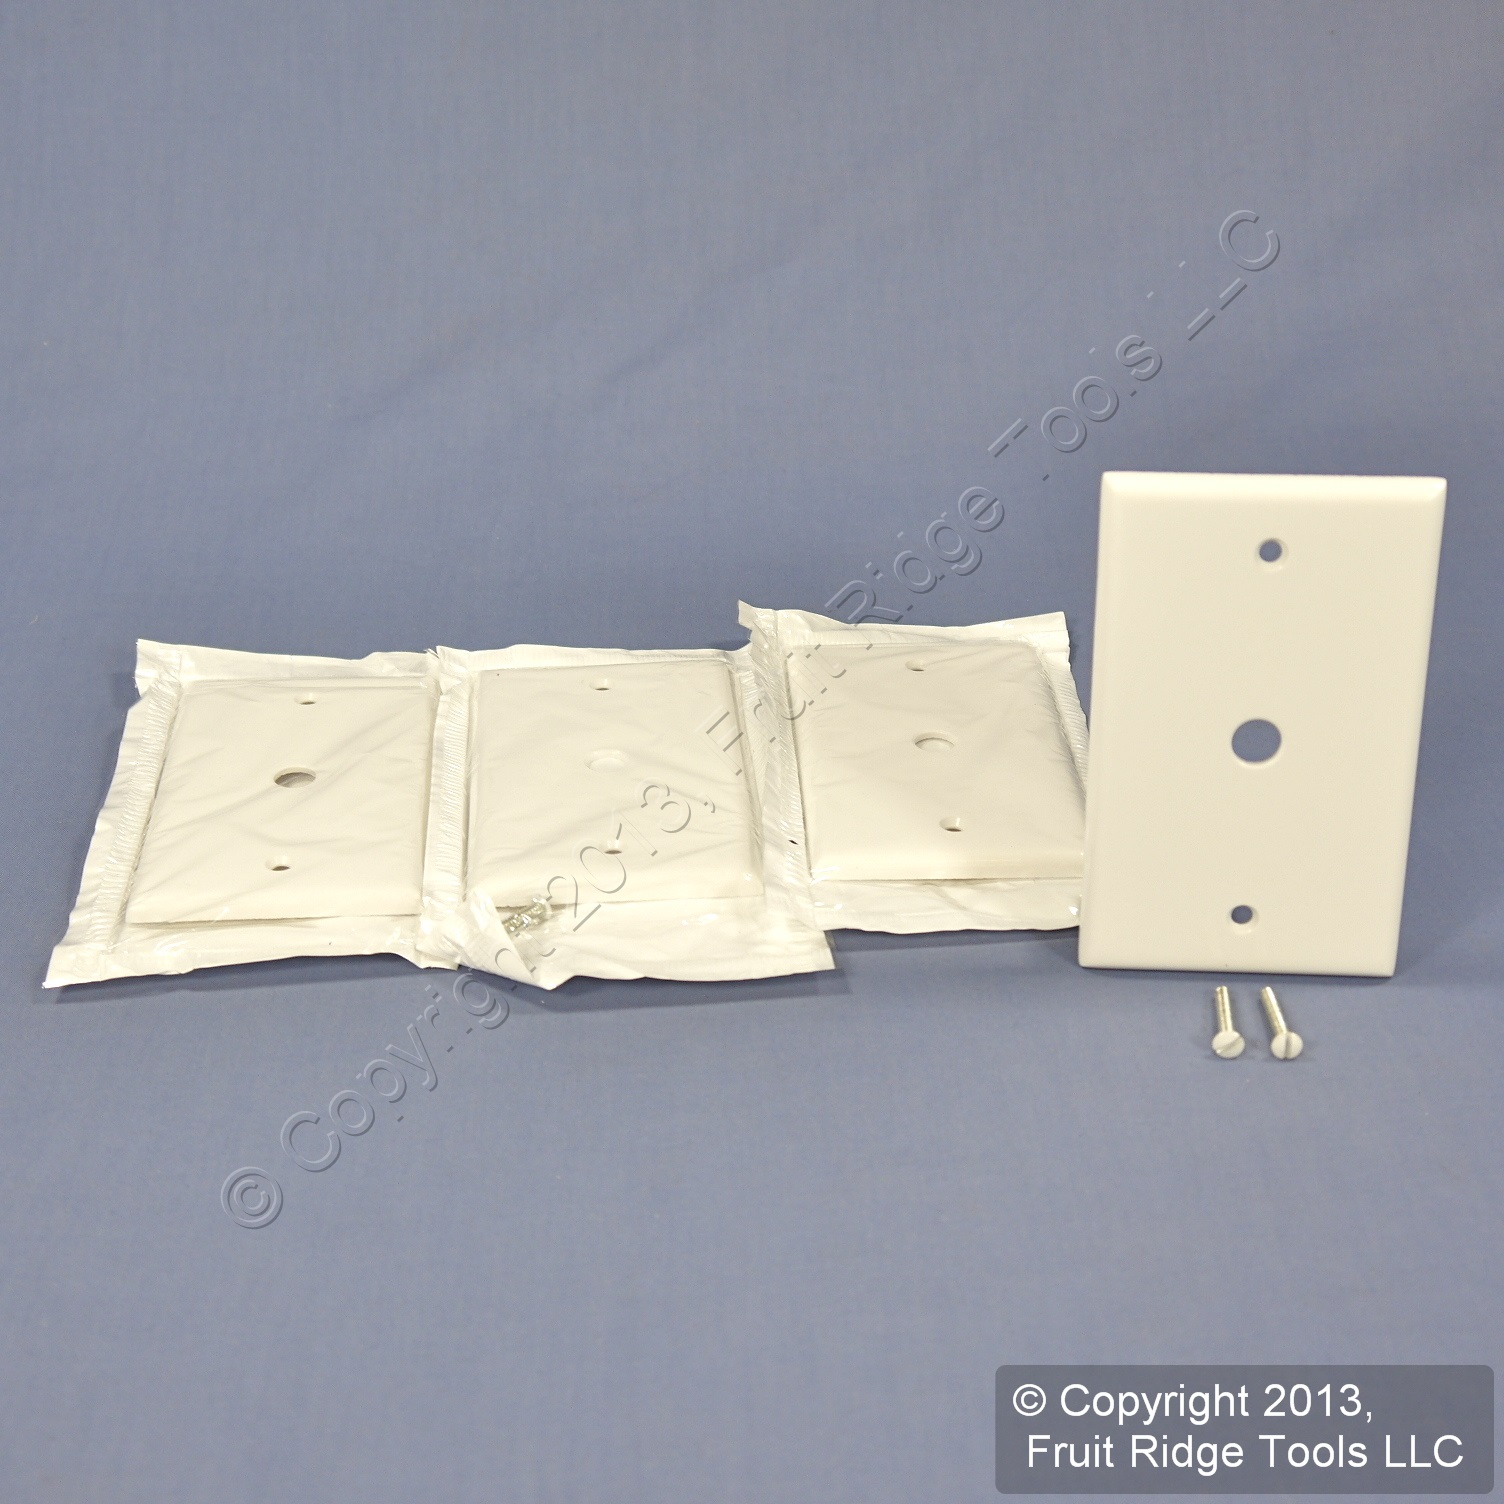 4 leviton white phone cable wallplate telephone cover plates 406 034 hole 88013 ebay. Black Bedroom Furniture Sets. Home Design Ideas